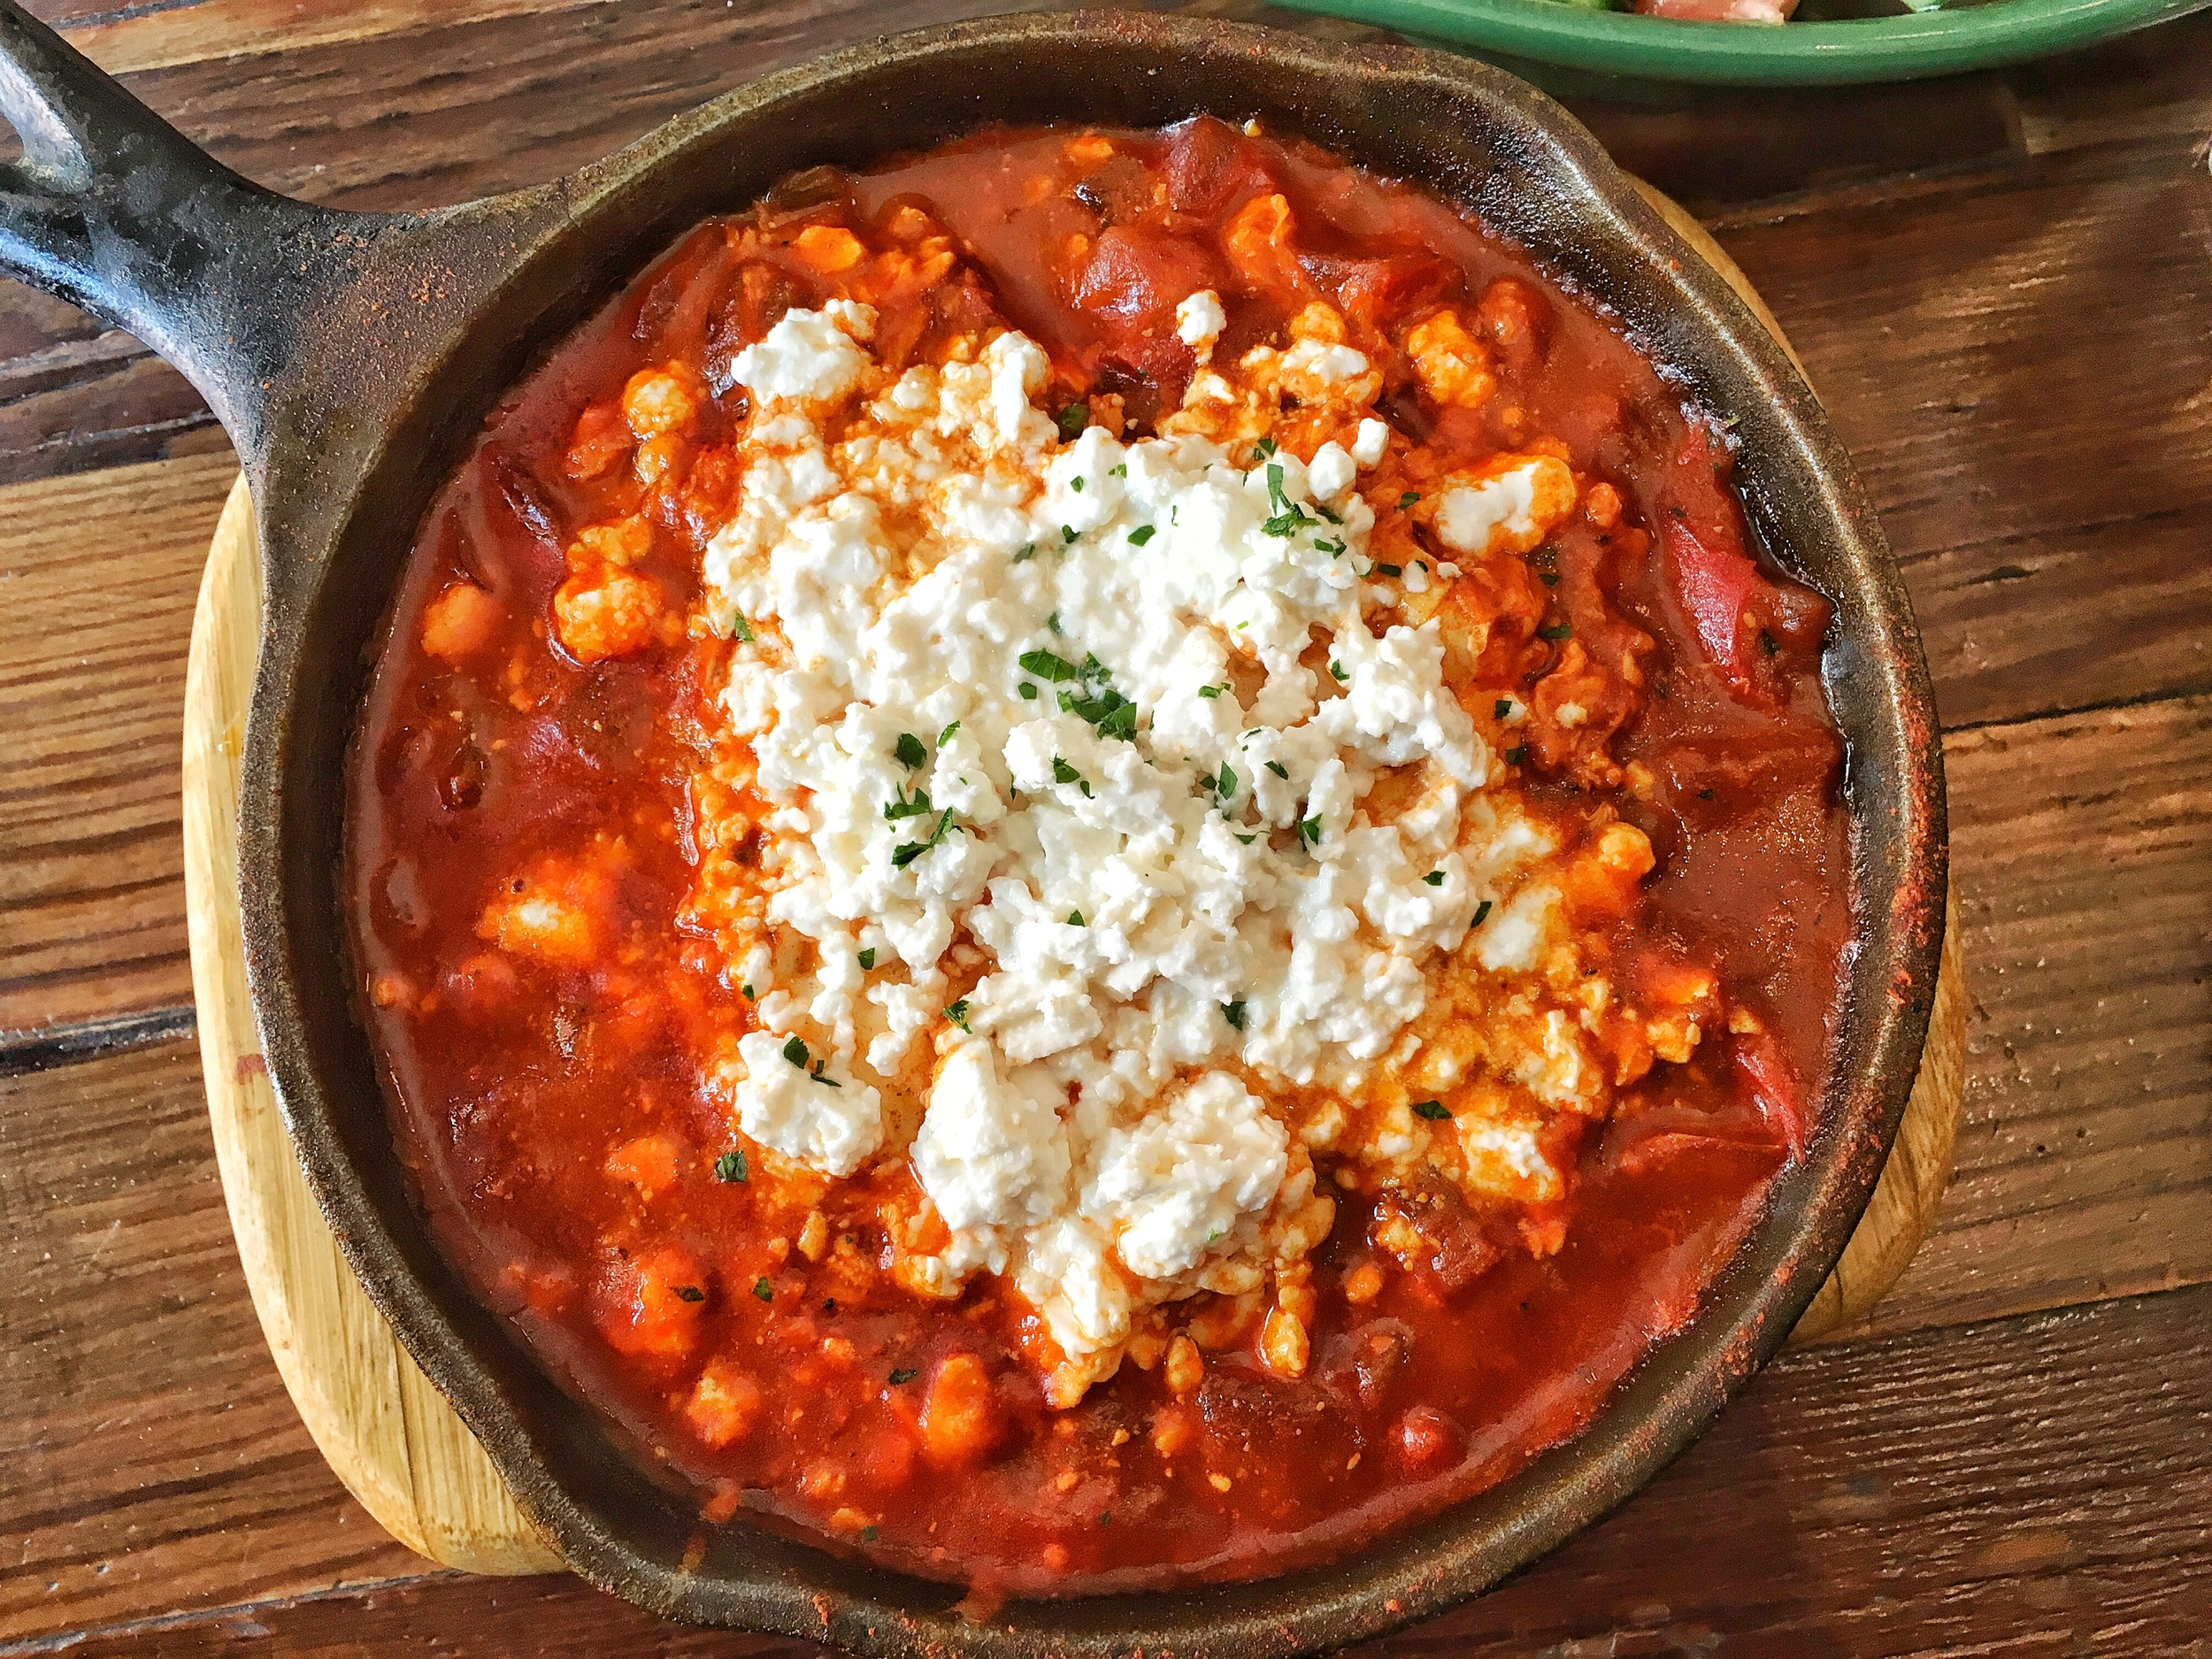 Close up of the 2 egg shakshuka with feta cheese in a spicy Moroccan tomato sauce